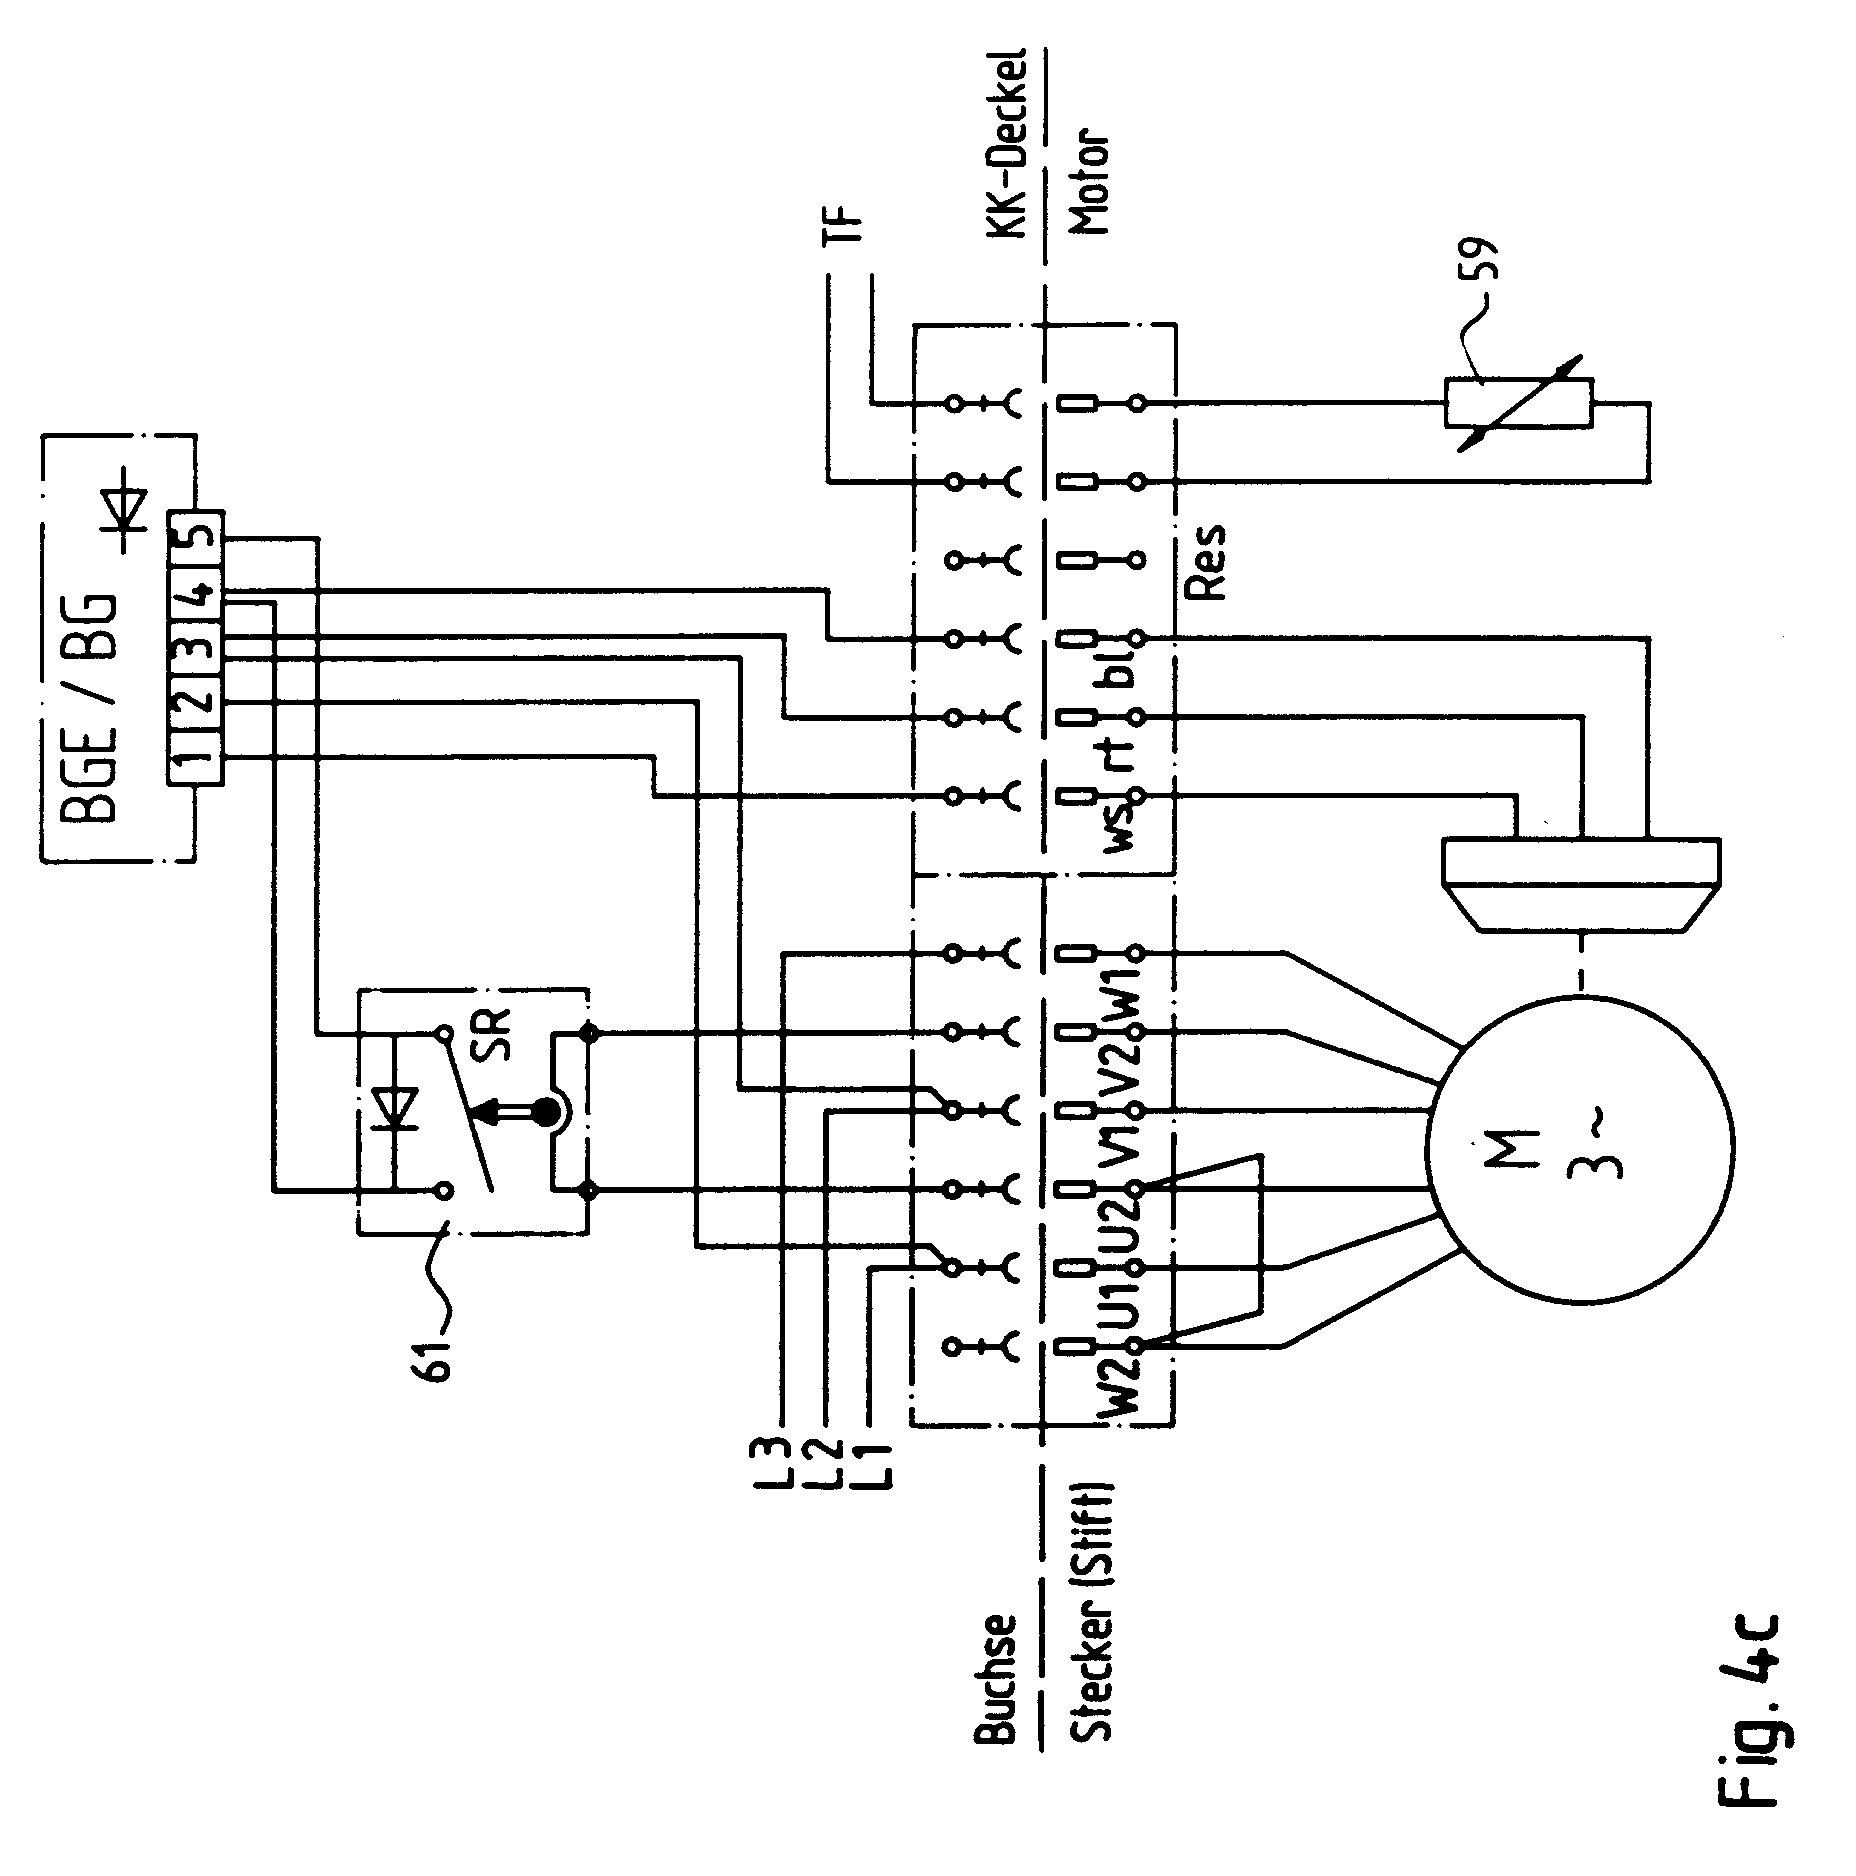 hight resolution of bauer gear motor wiring diagram magnificent bodine motor wiring diagram frieze electrical diagram 11f